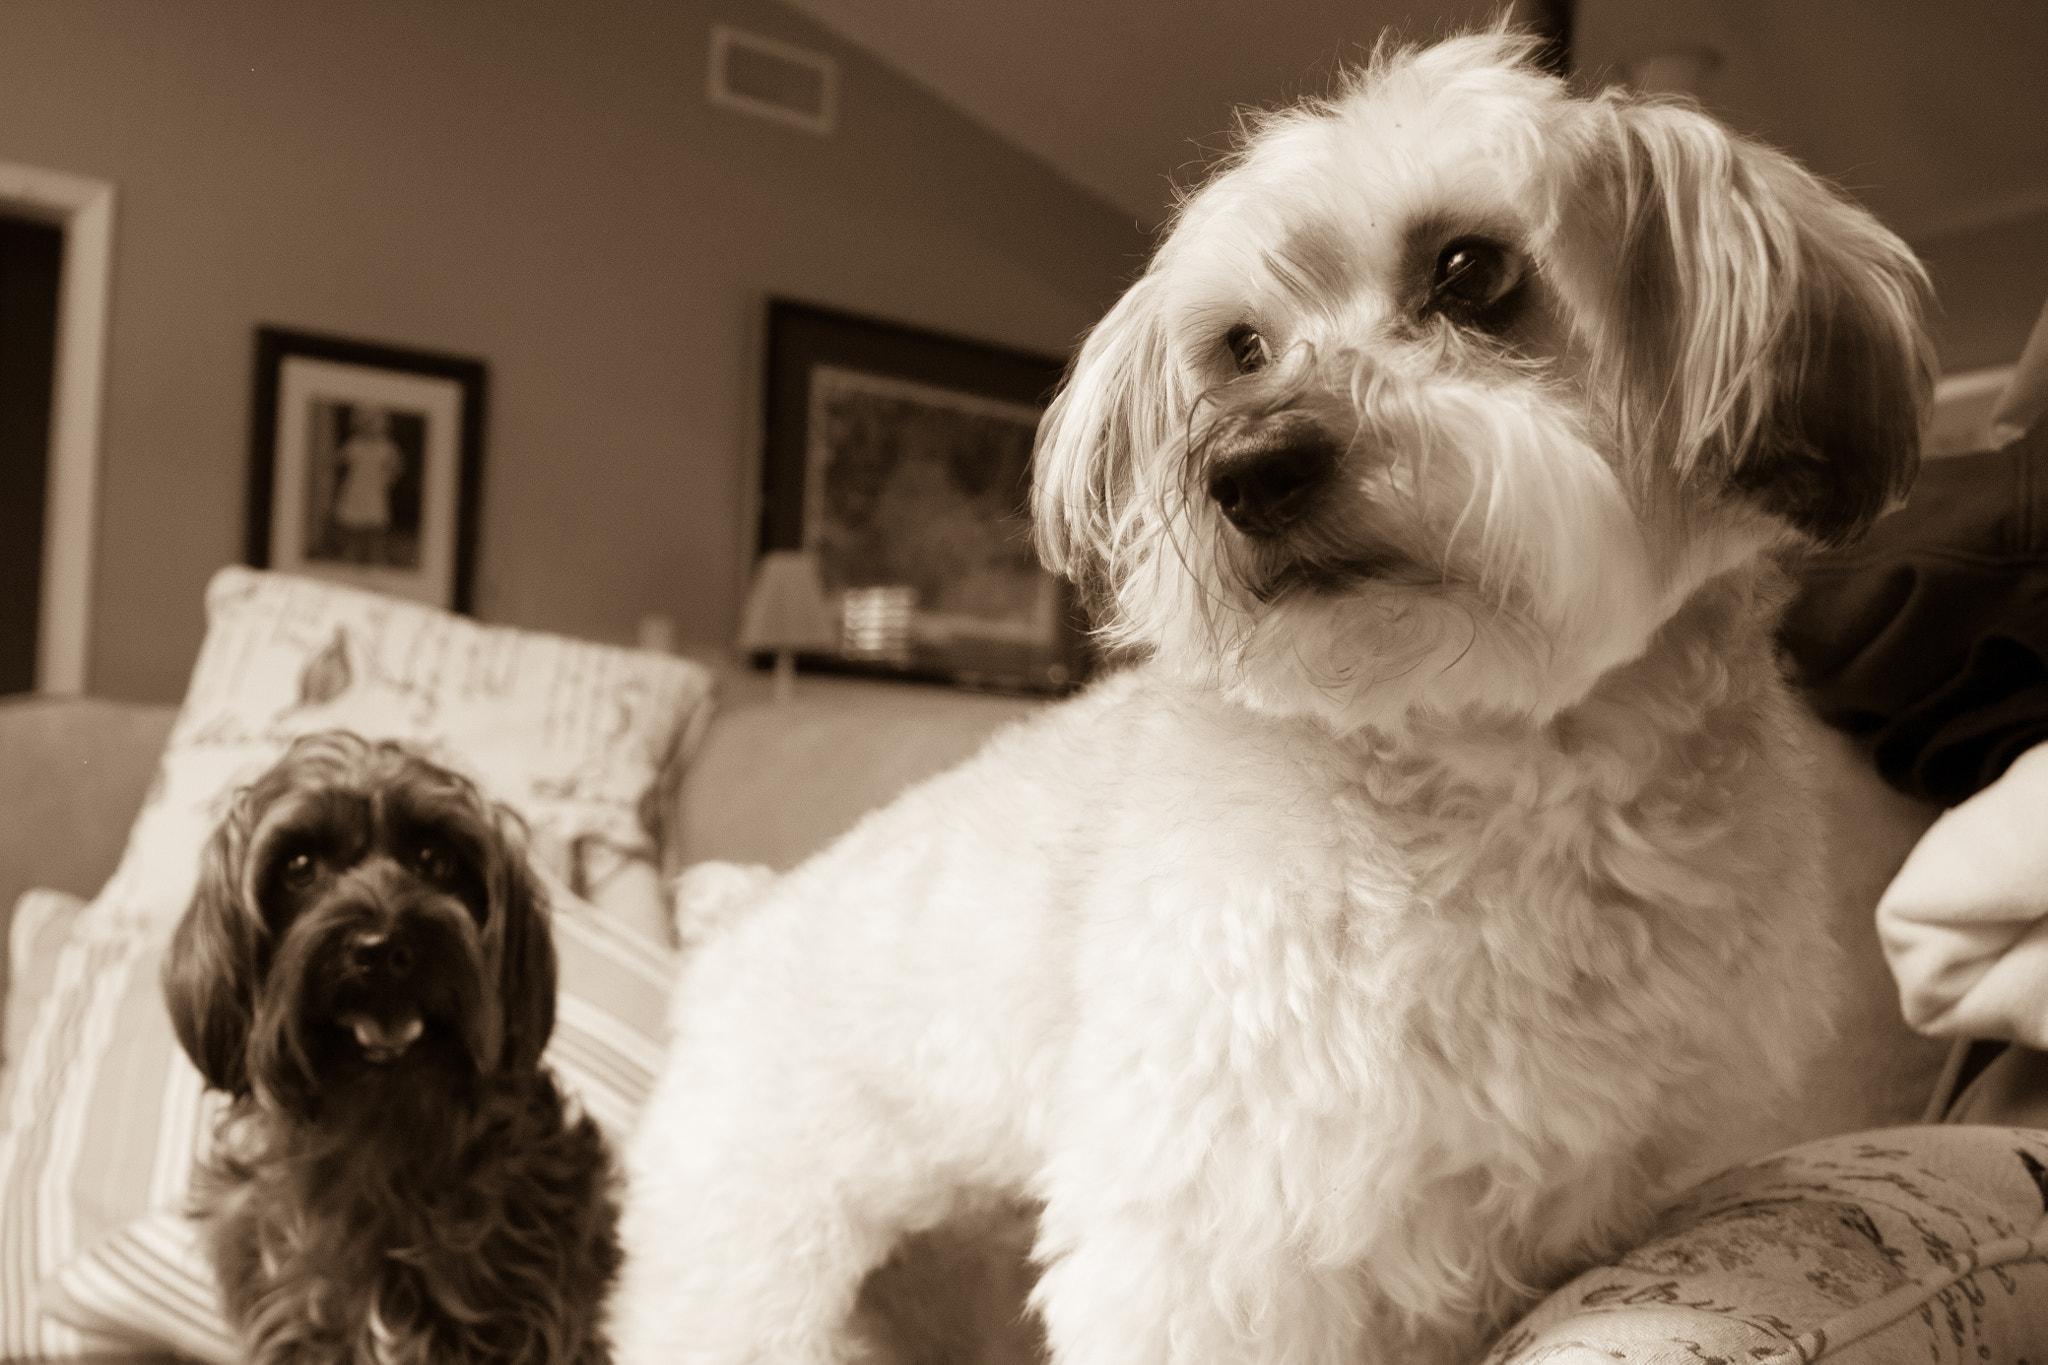 Photograph Mazy & Chloe by Tim Evans on 500px